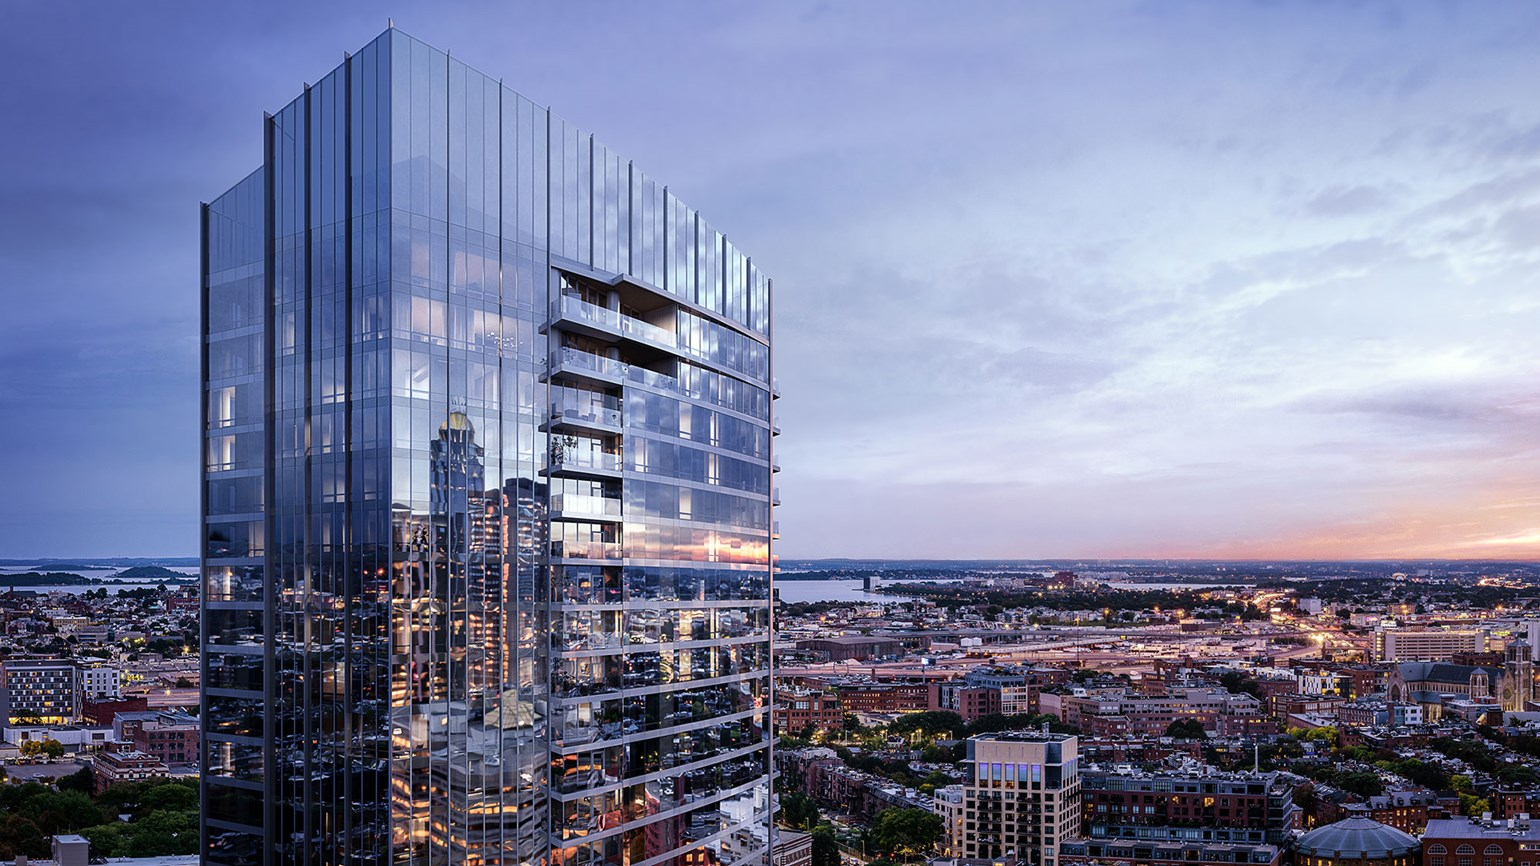 Construction starts on Raffles hotel in Boston